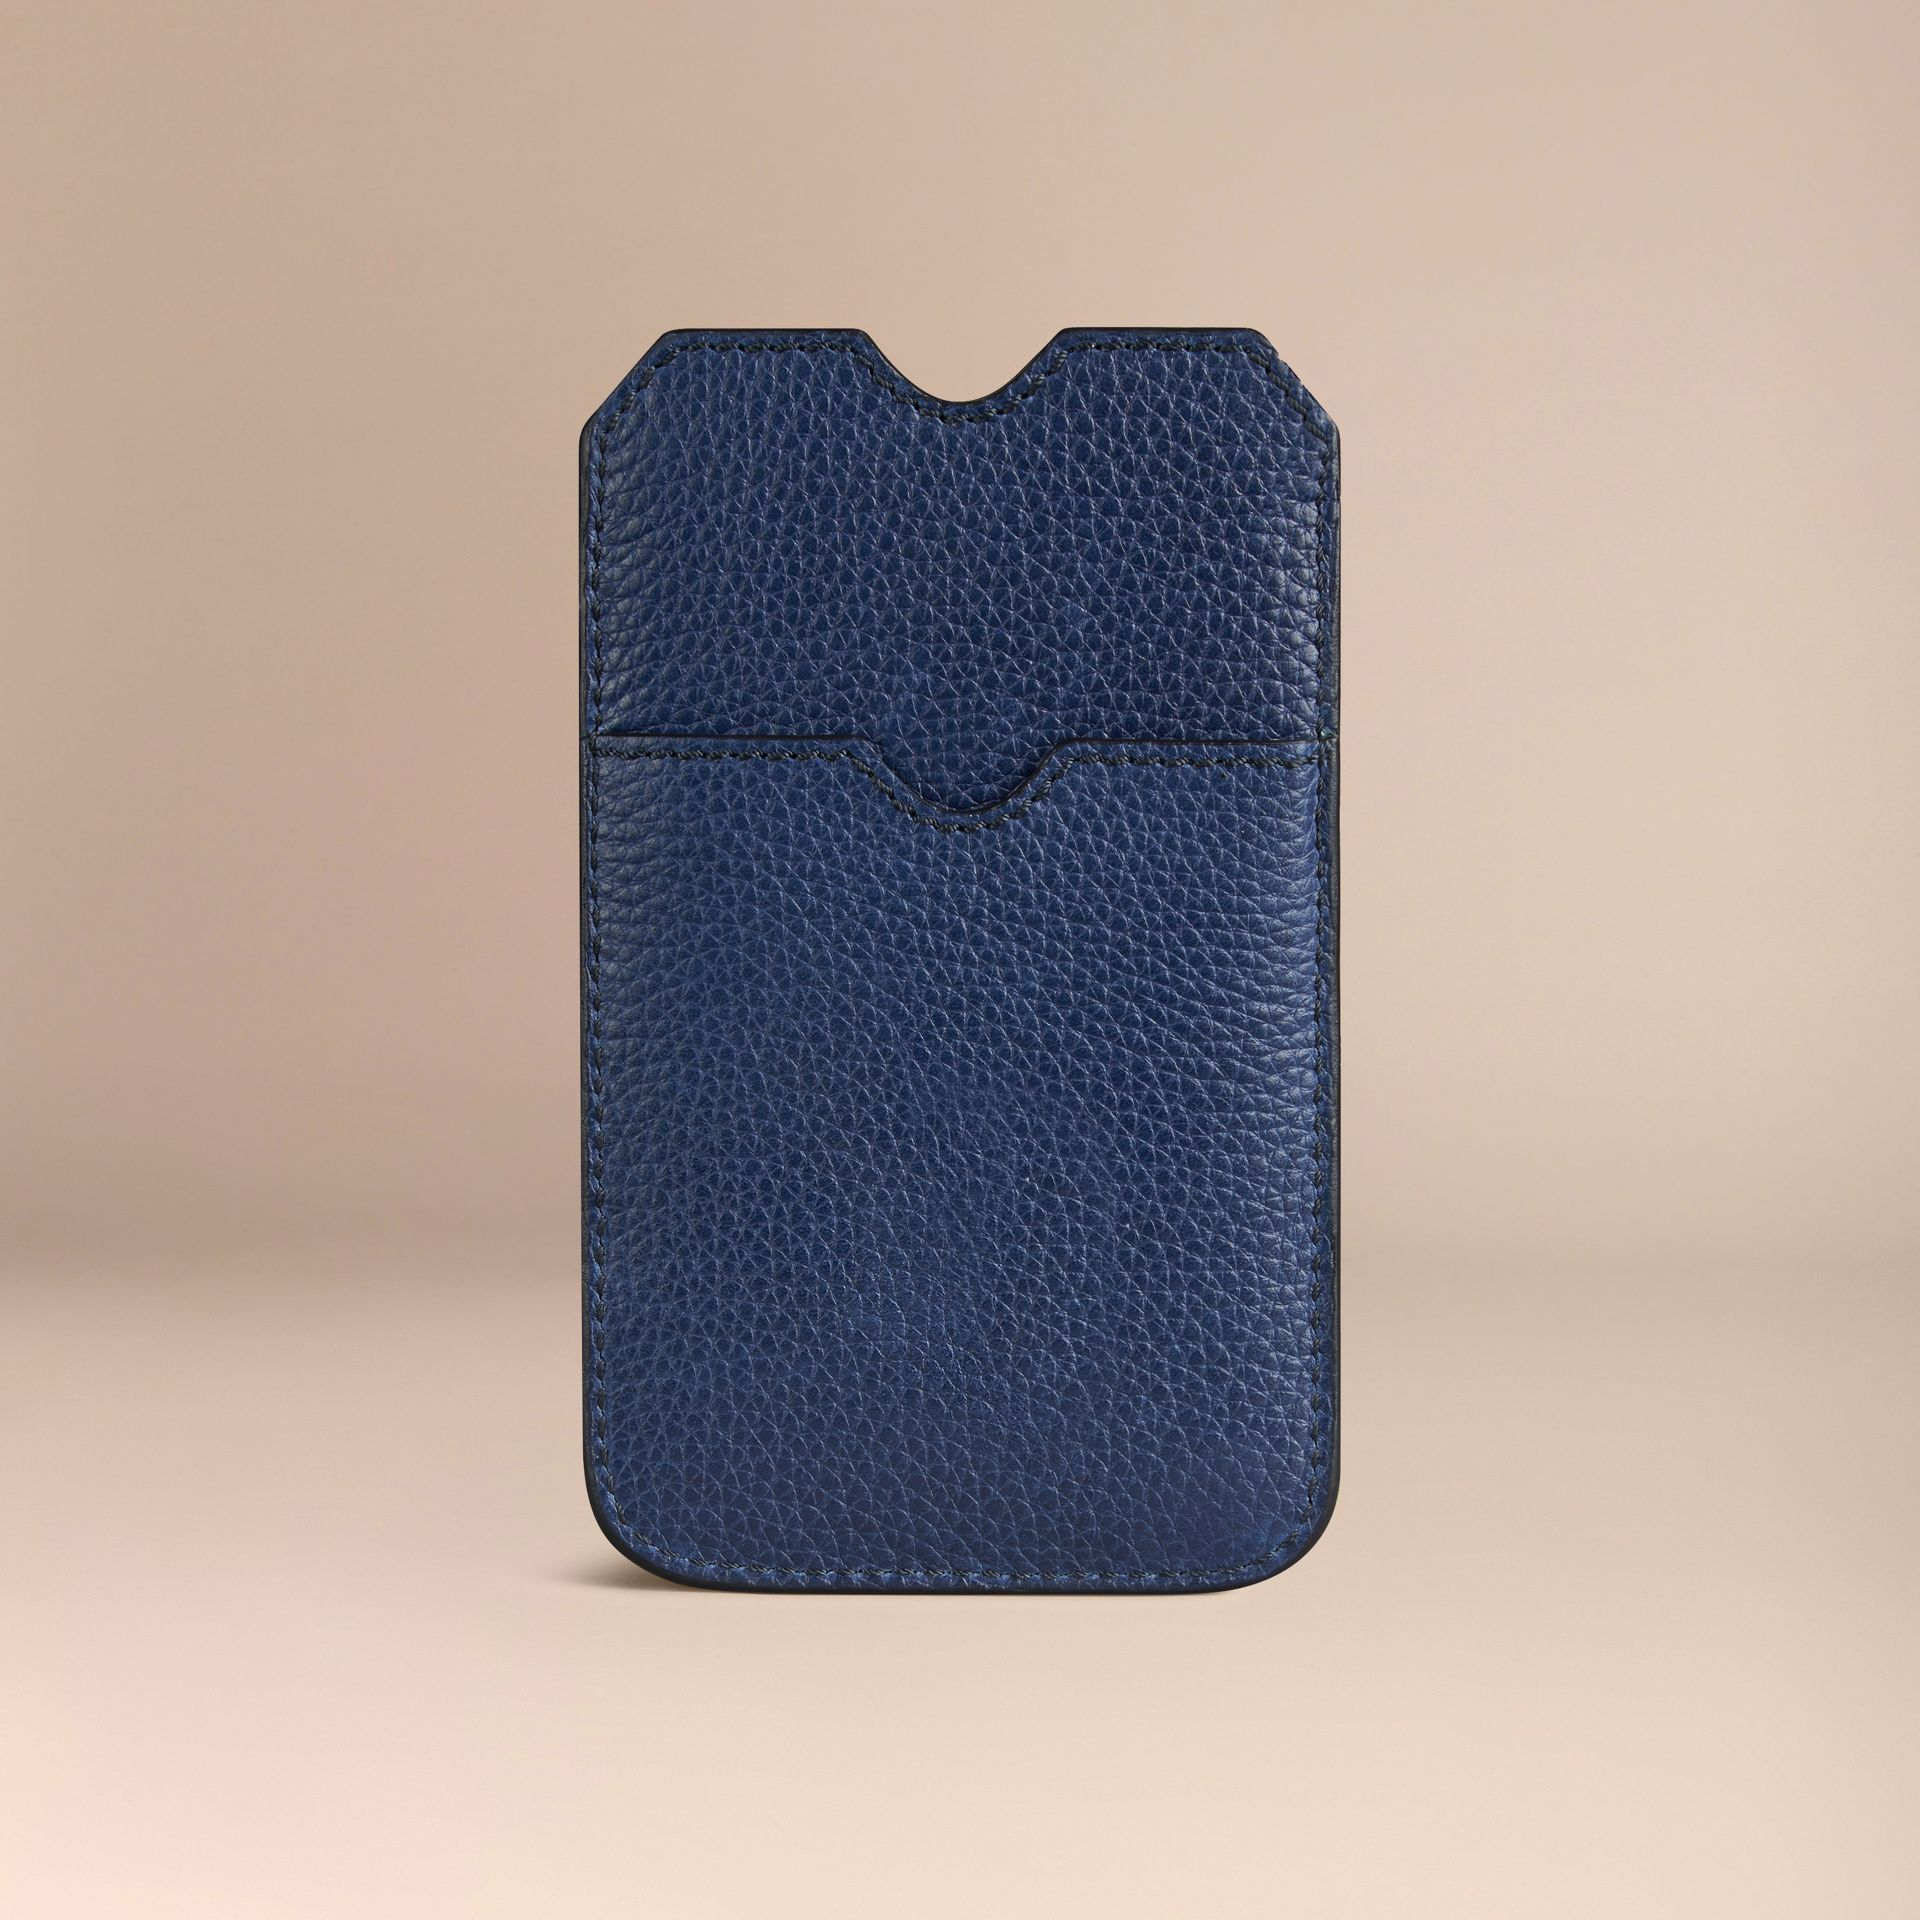 Custodia in pelle a grana per iPhone 5/5S (Navy Intenso) | Burberry - immagine della galleria 2